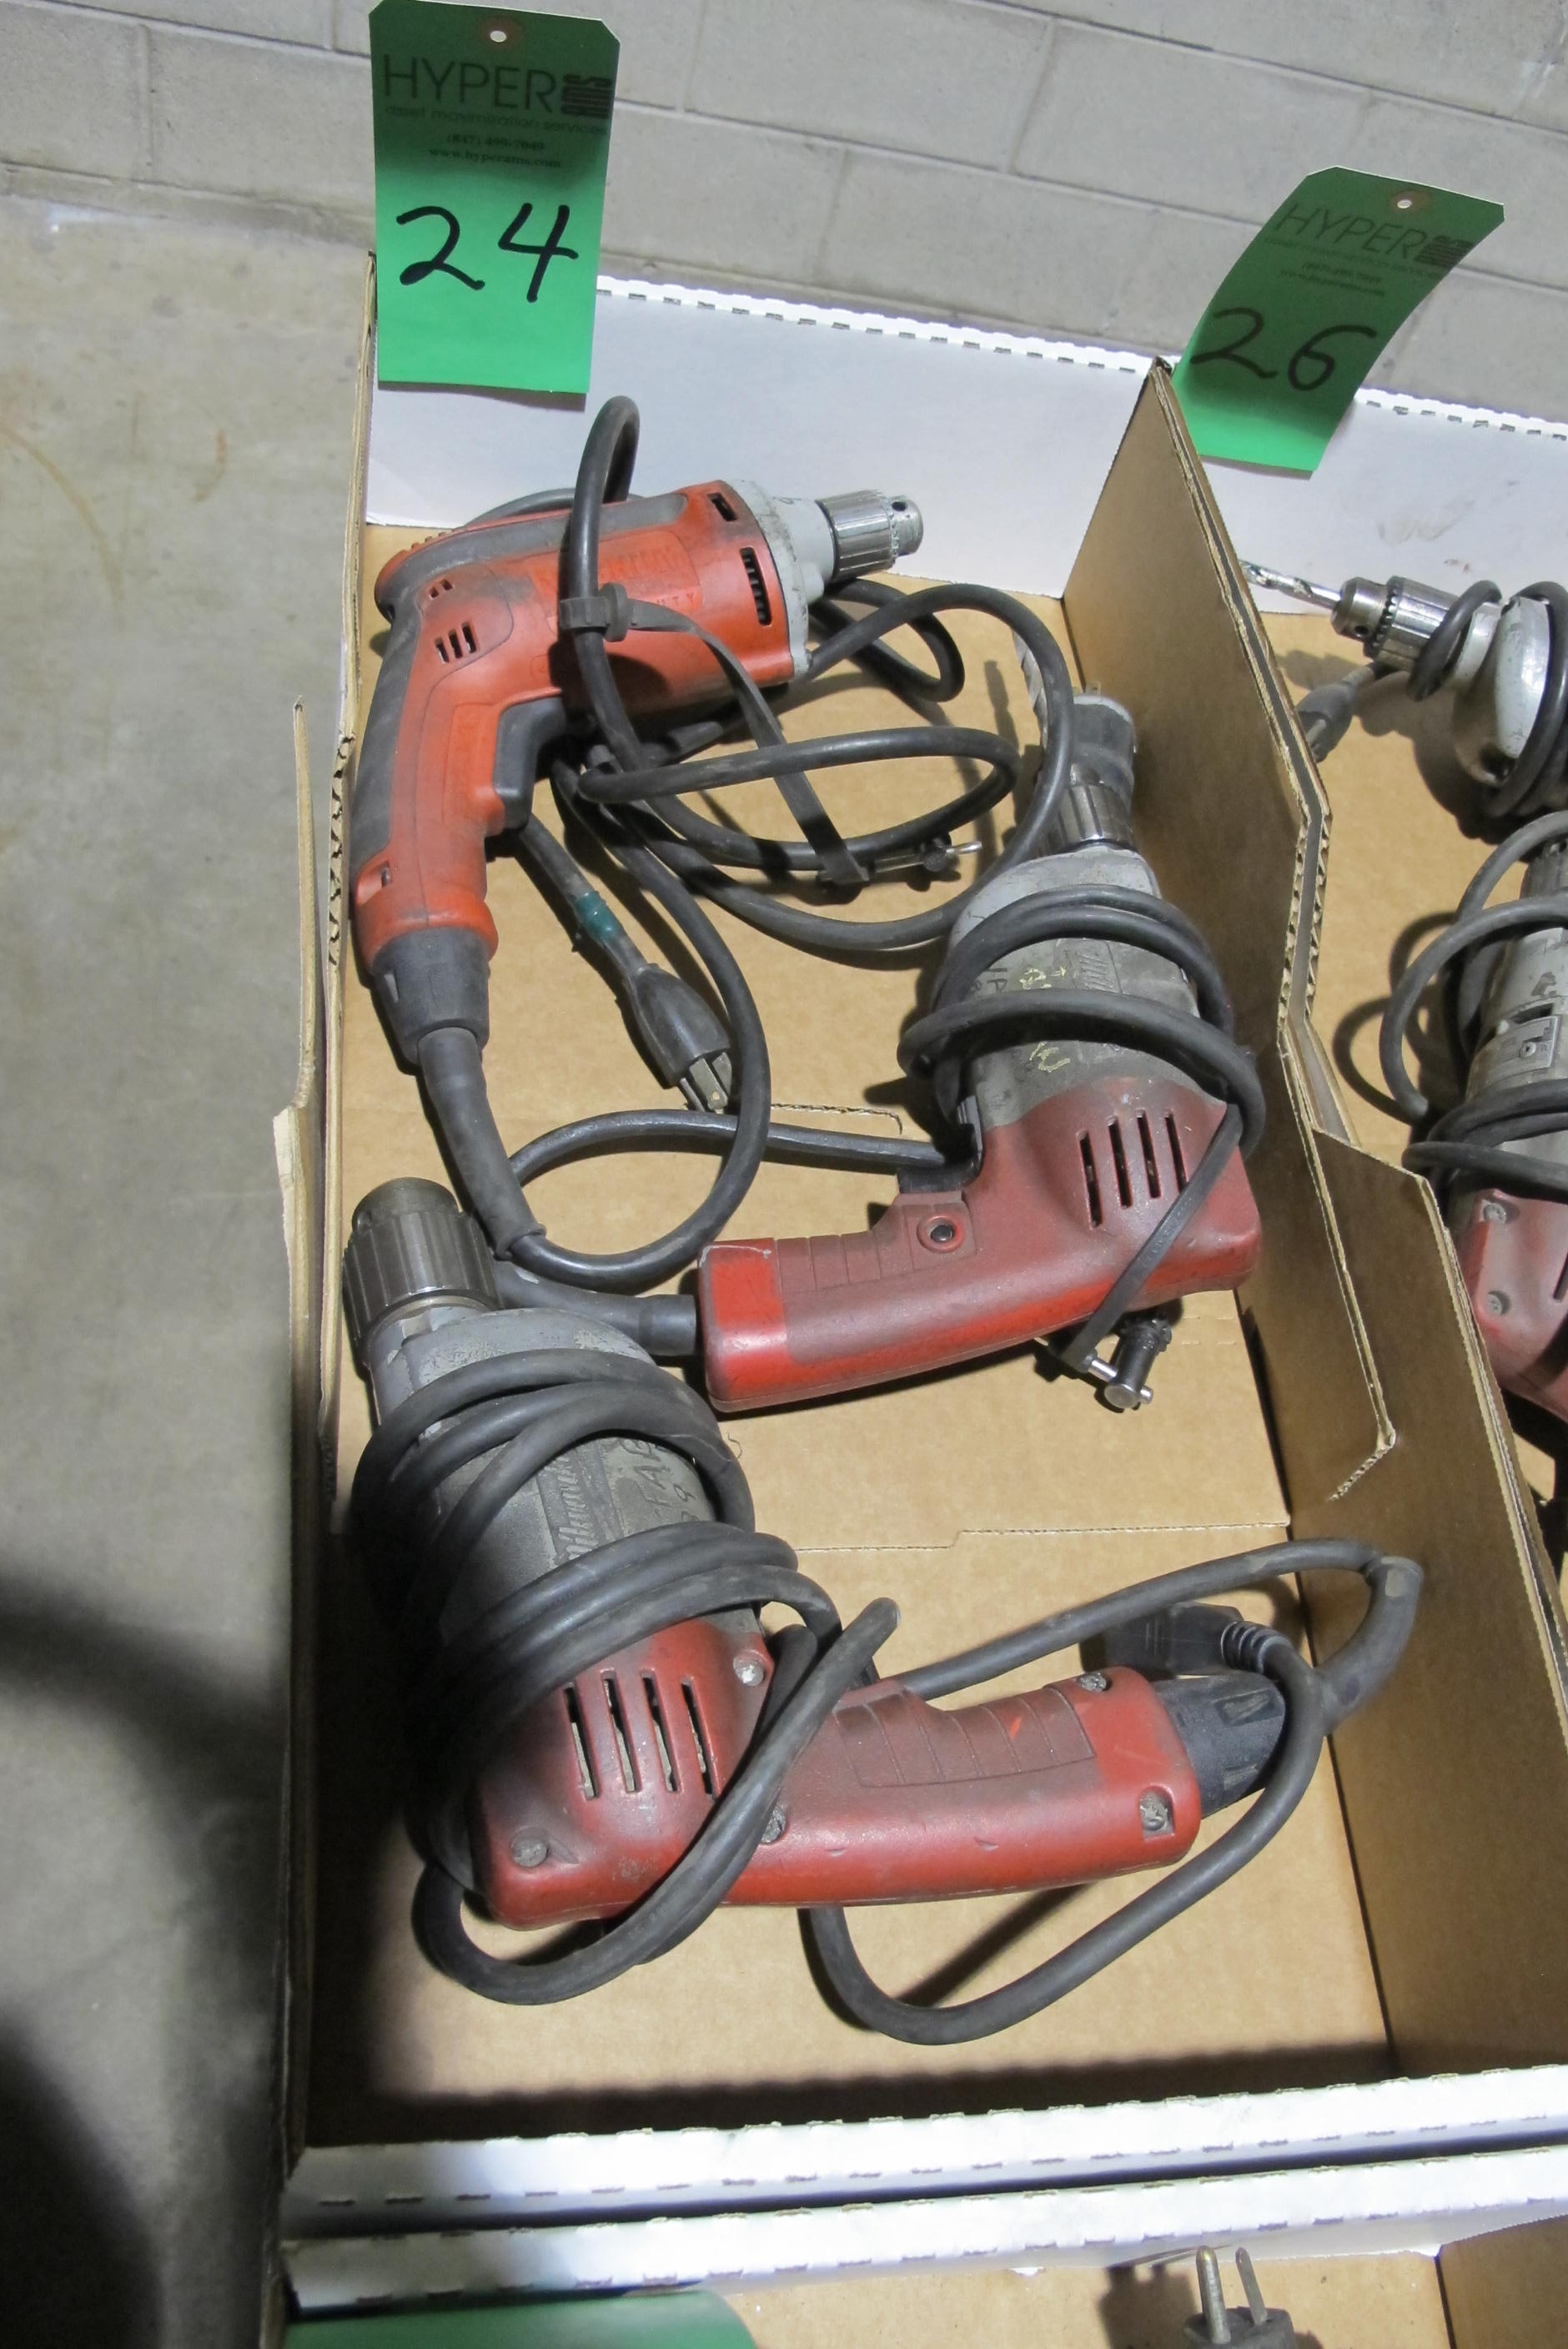 Lot 24 - (3) Milwaukee Drills